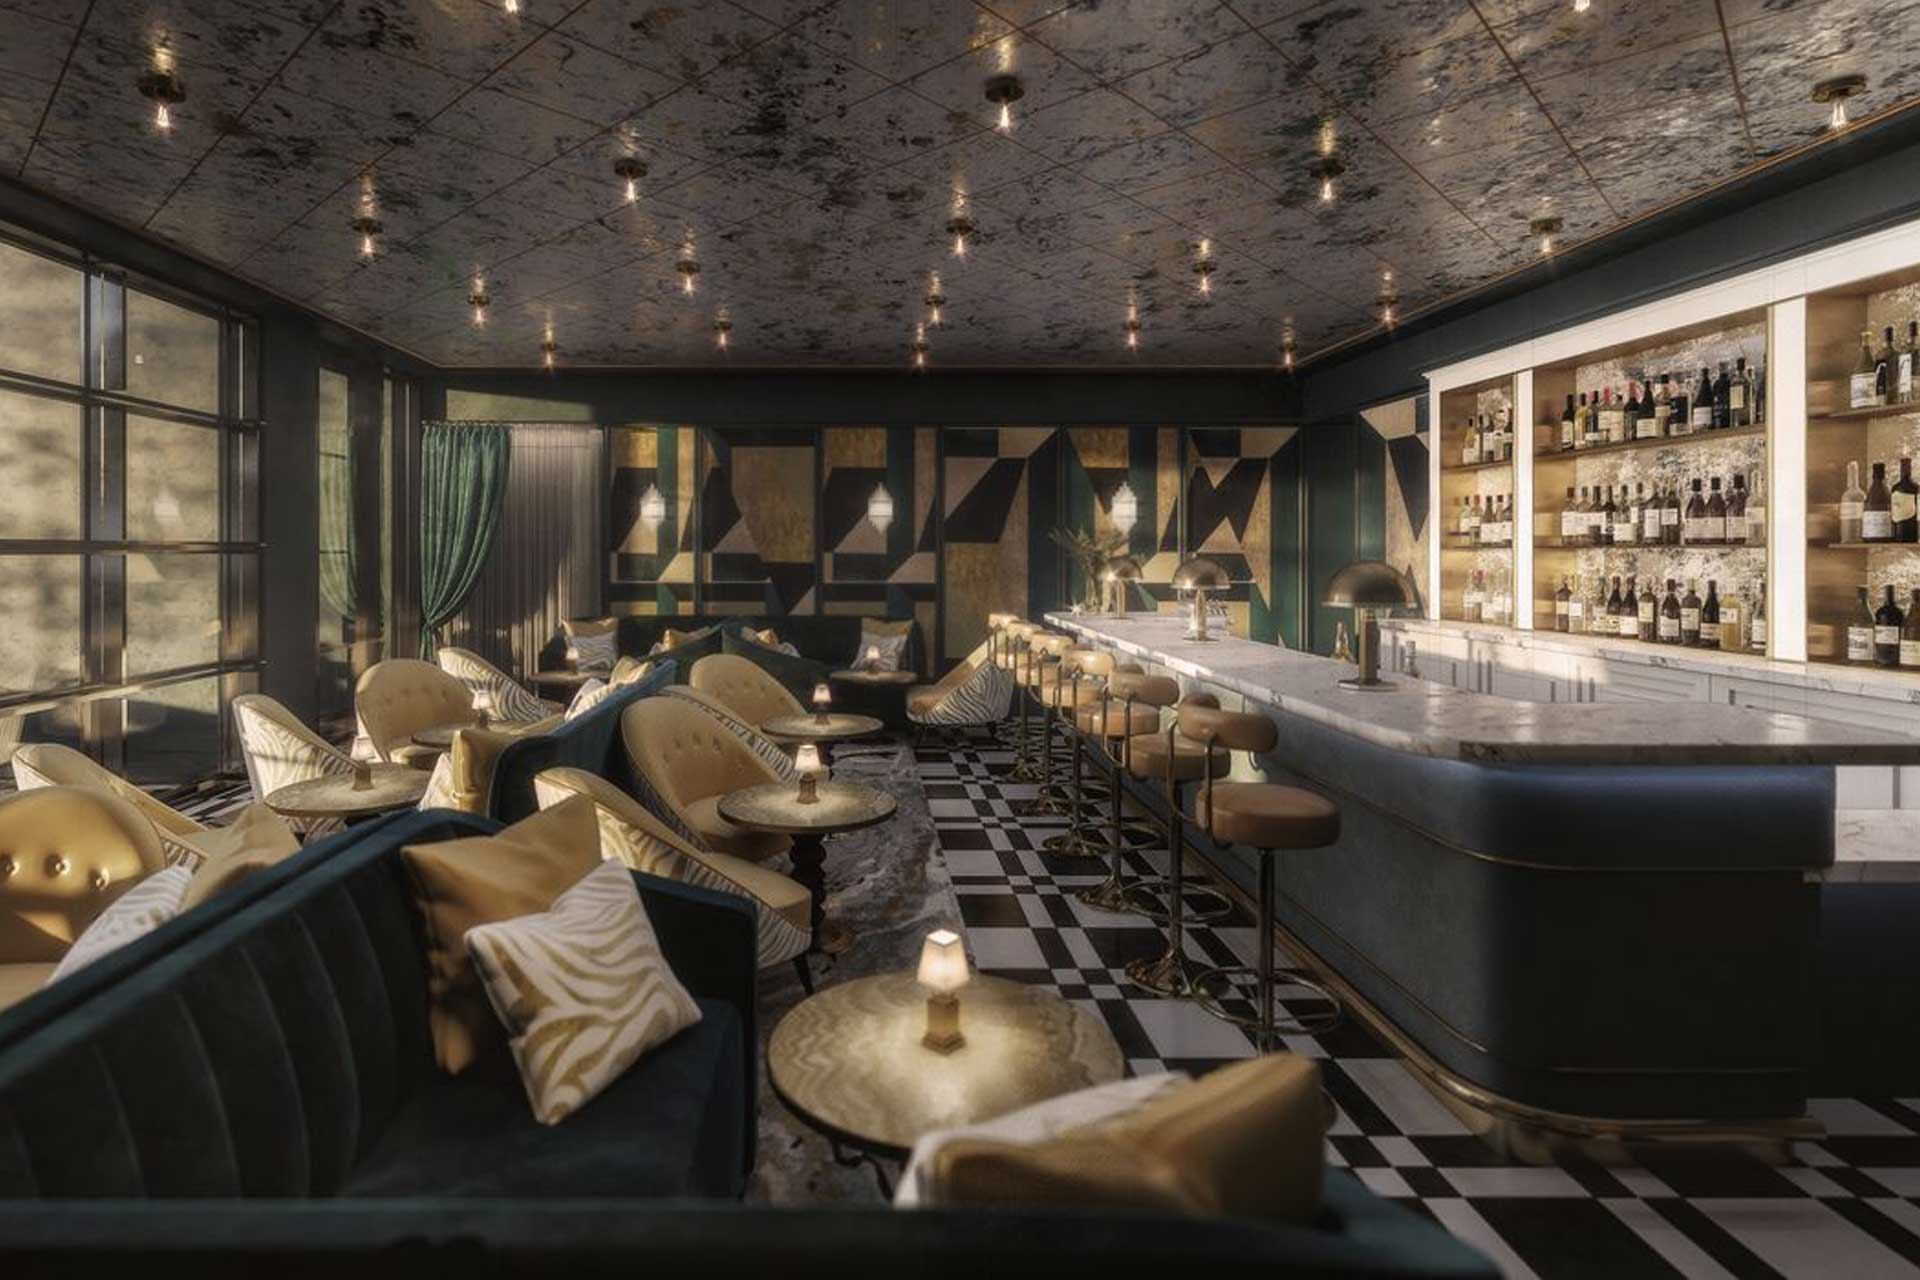 Wolfgang Puck will launch multiple F&B venues within Pendry West Hollywood